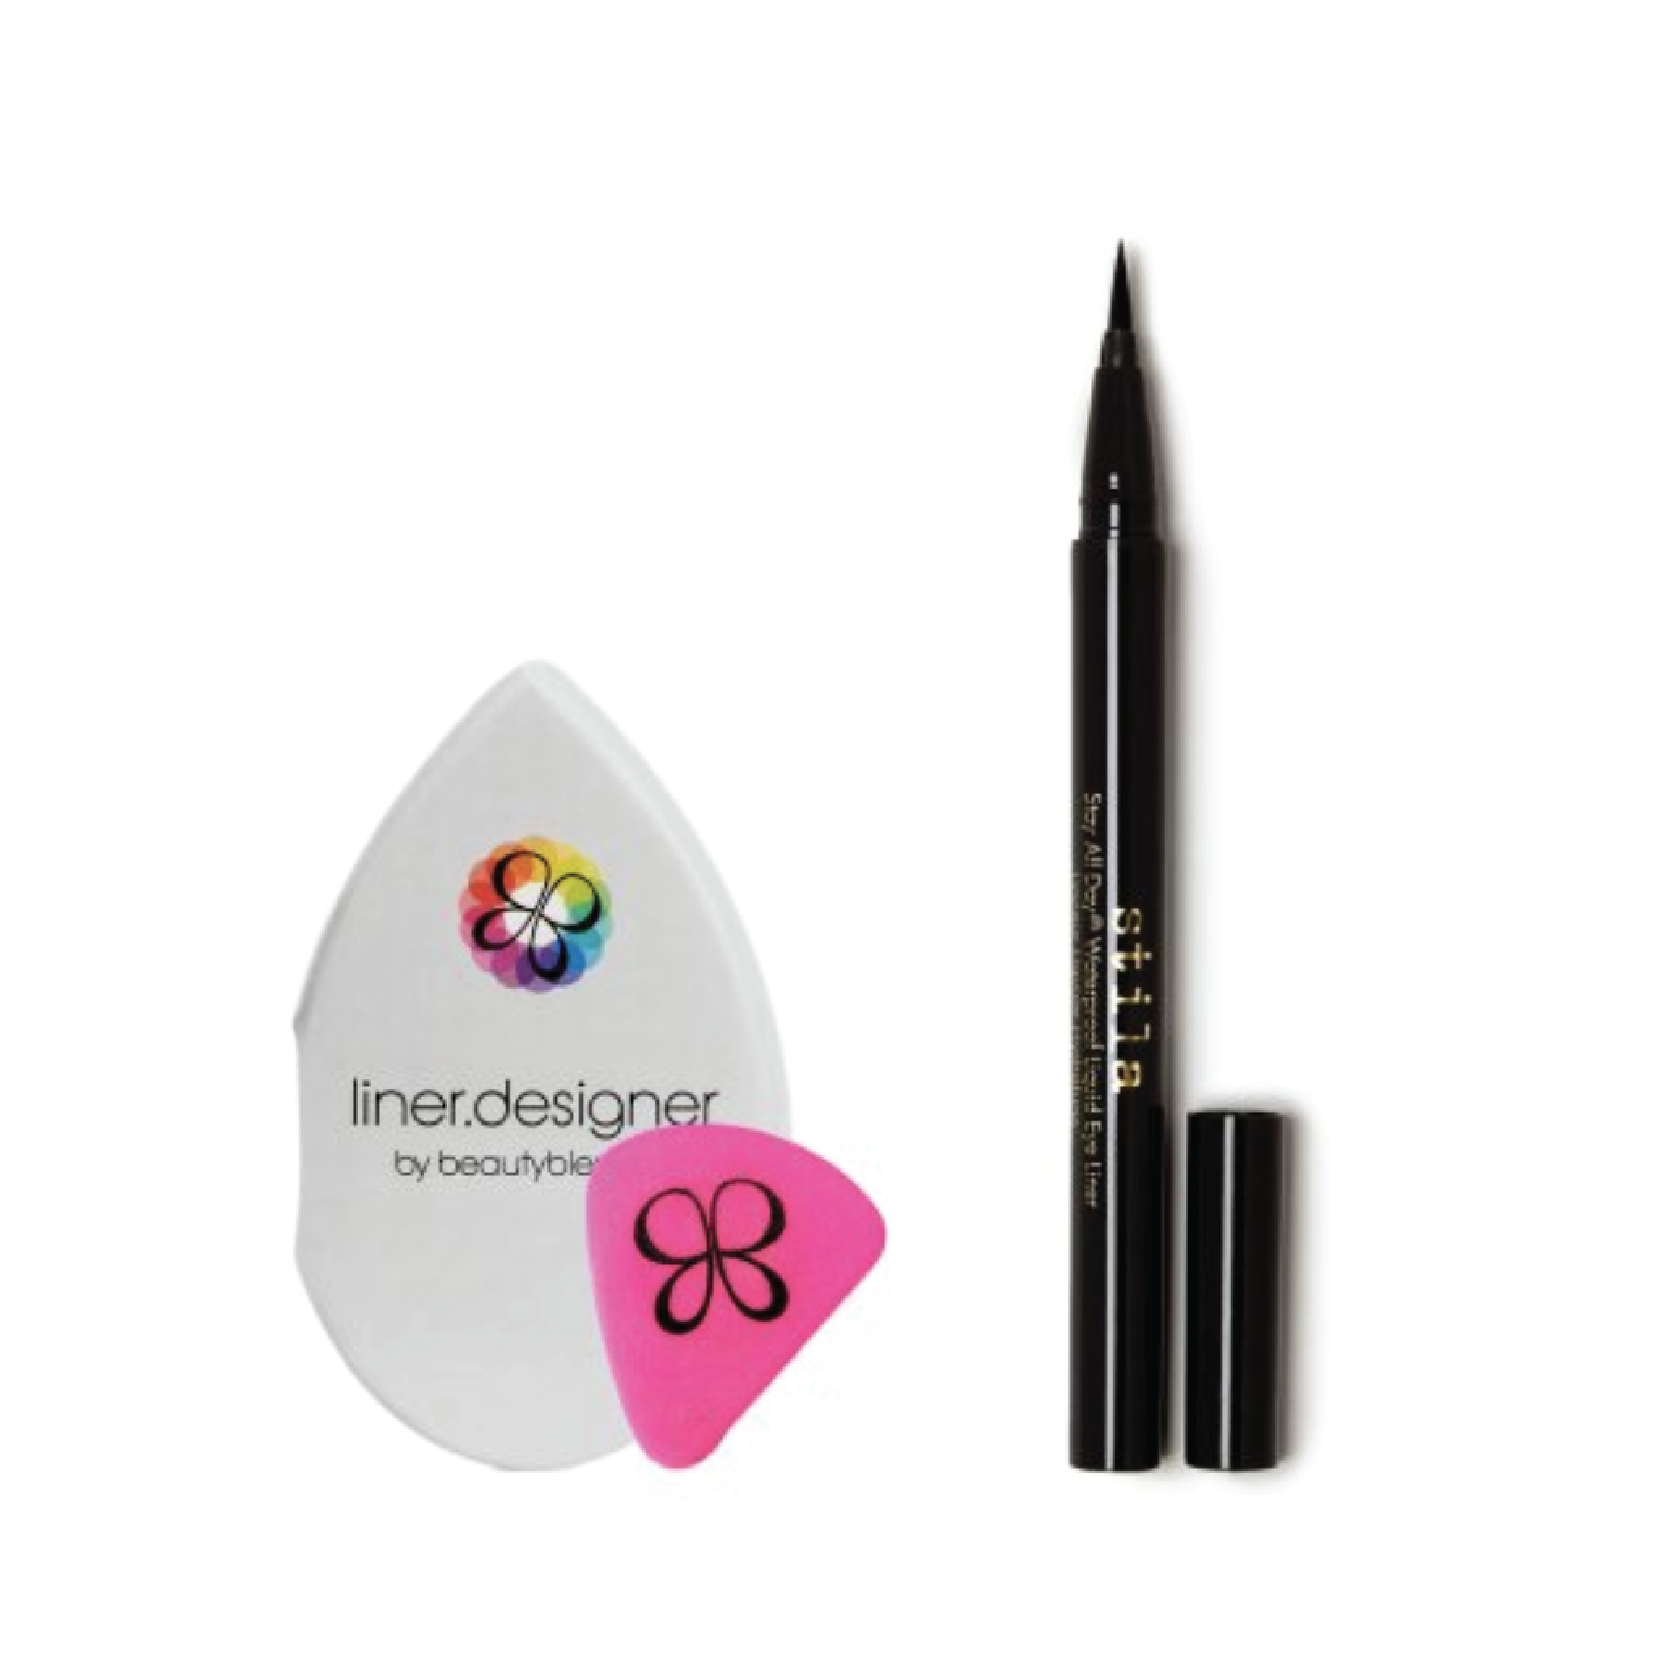 Stila Stay All Day Eyeliner x BeautyBlender Liner.Designer Duo - $25 at BirchboxThis is a great full-size set for perfecting a classic cat eye.